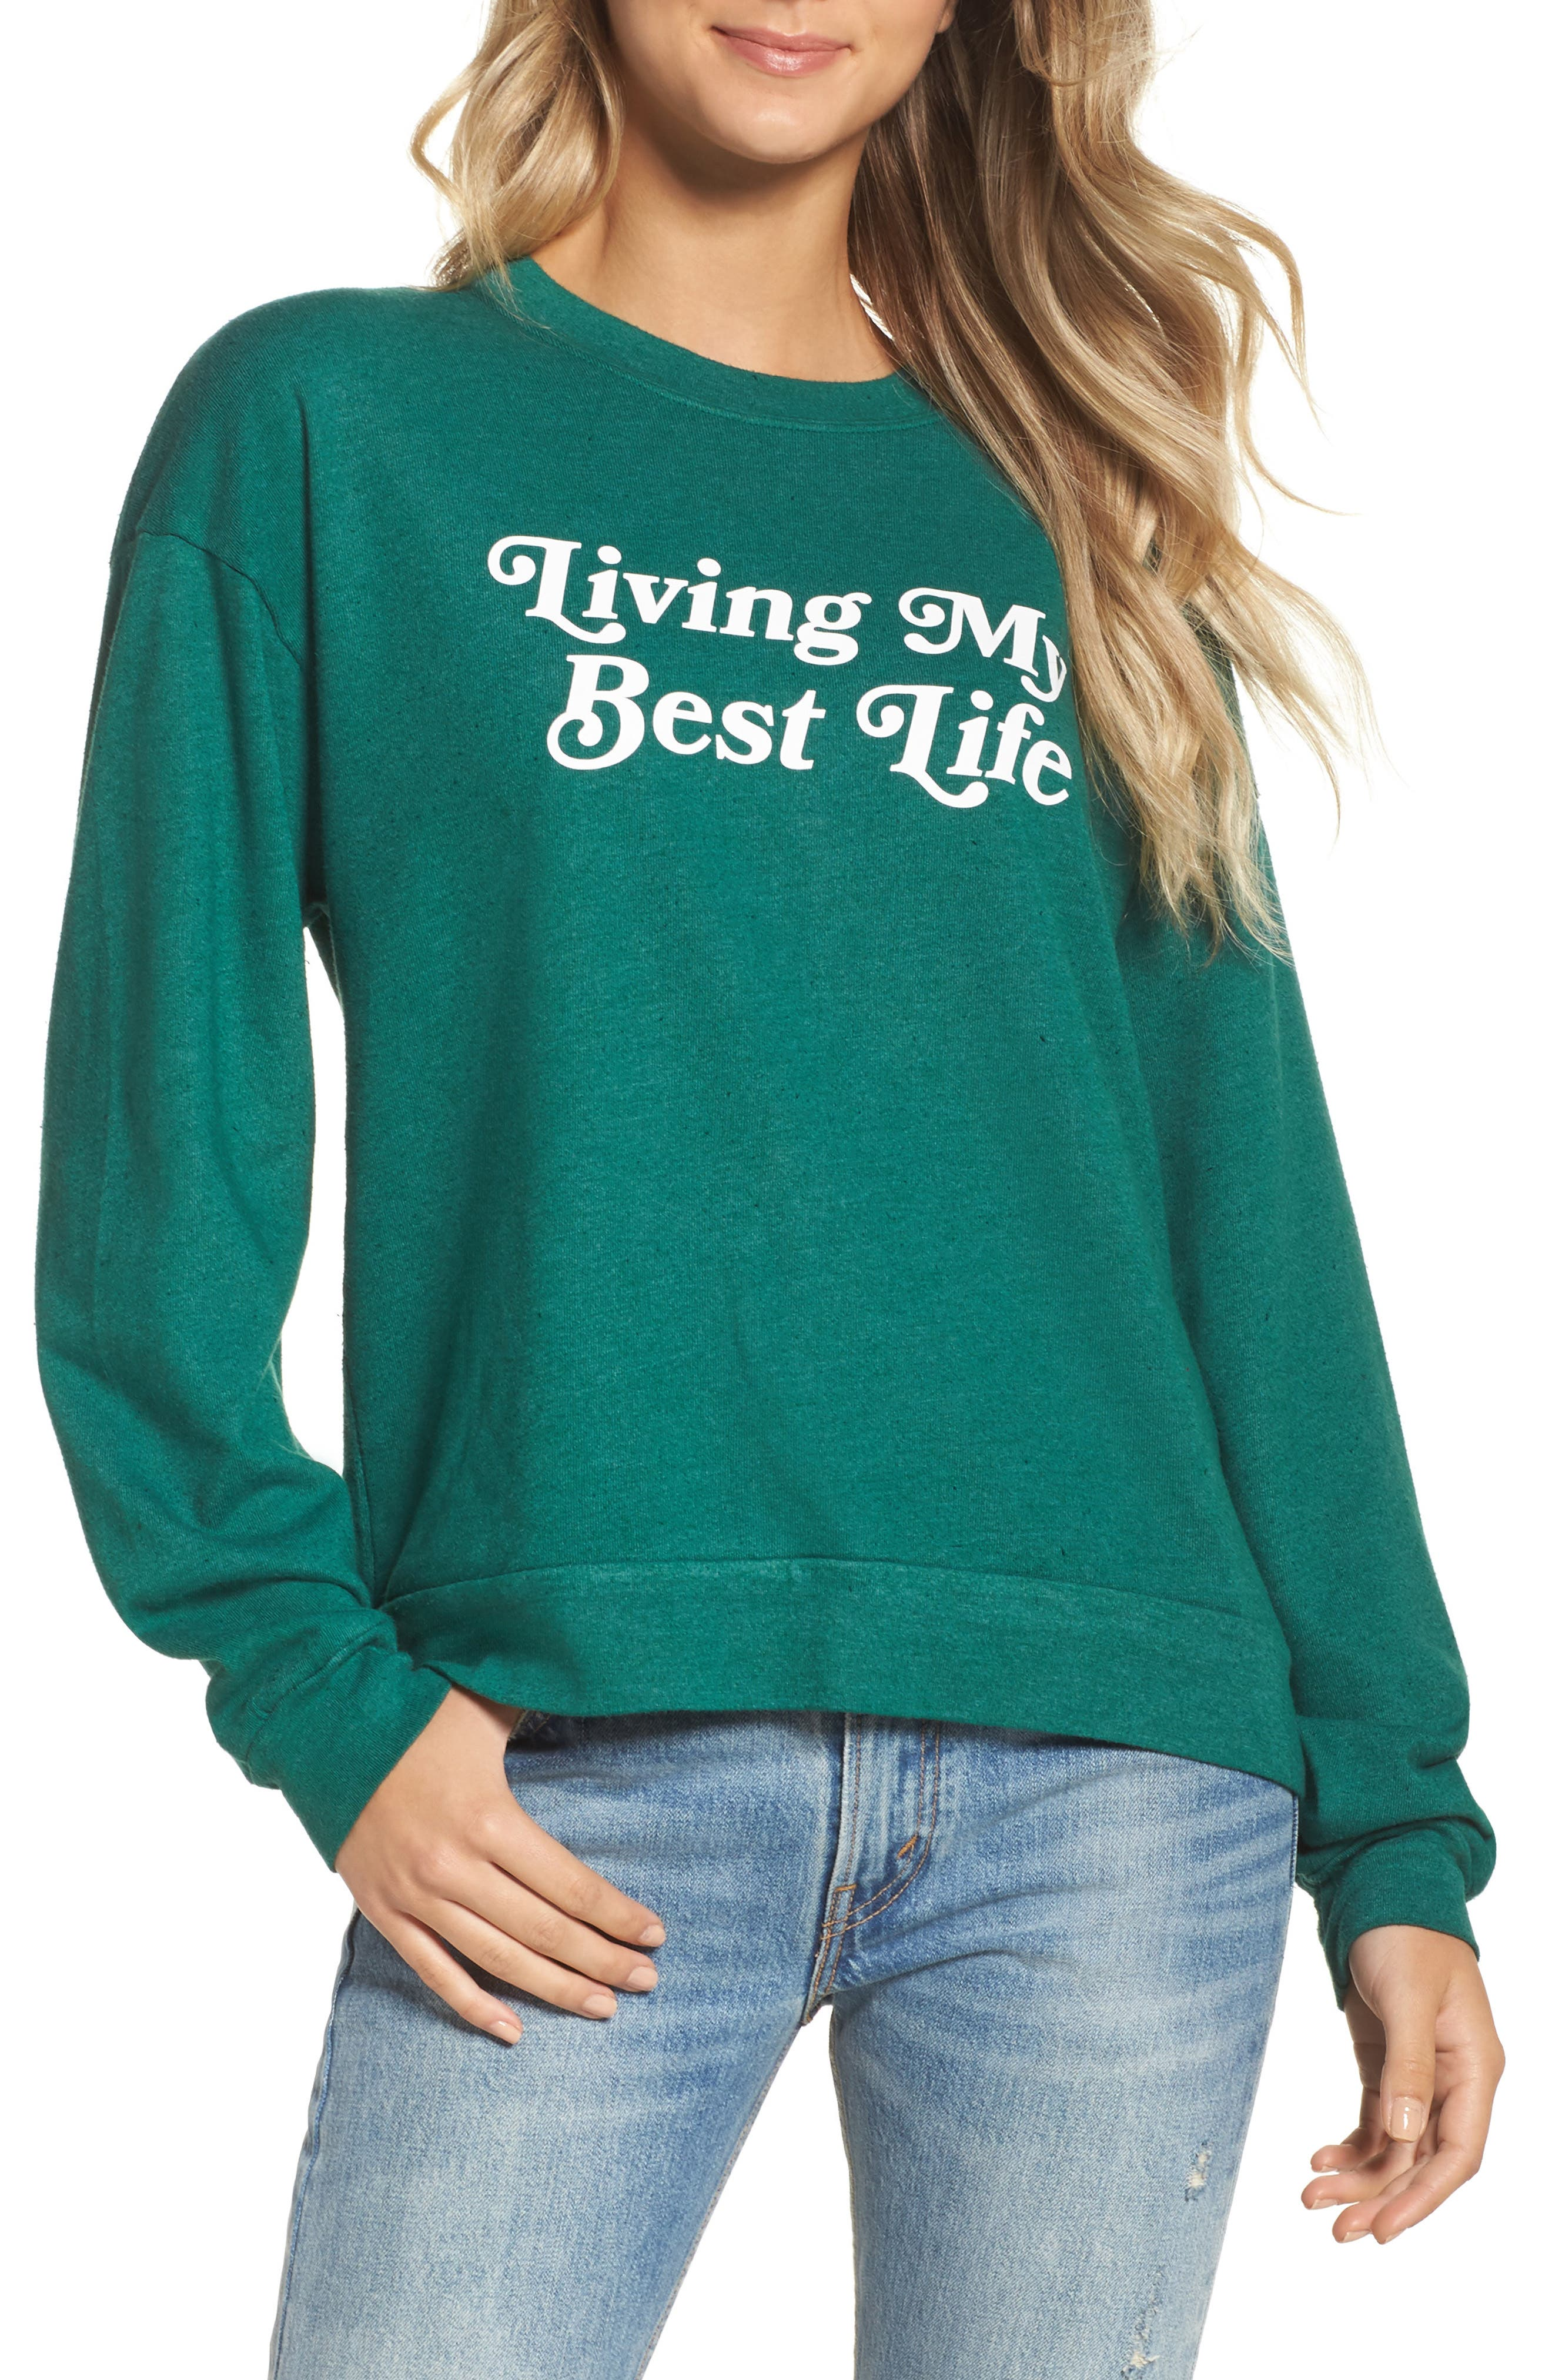 Alternate Image 1 Selected - Private Party Living My Best Life Sweatshirt